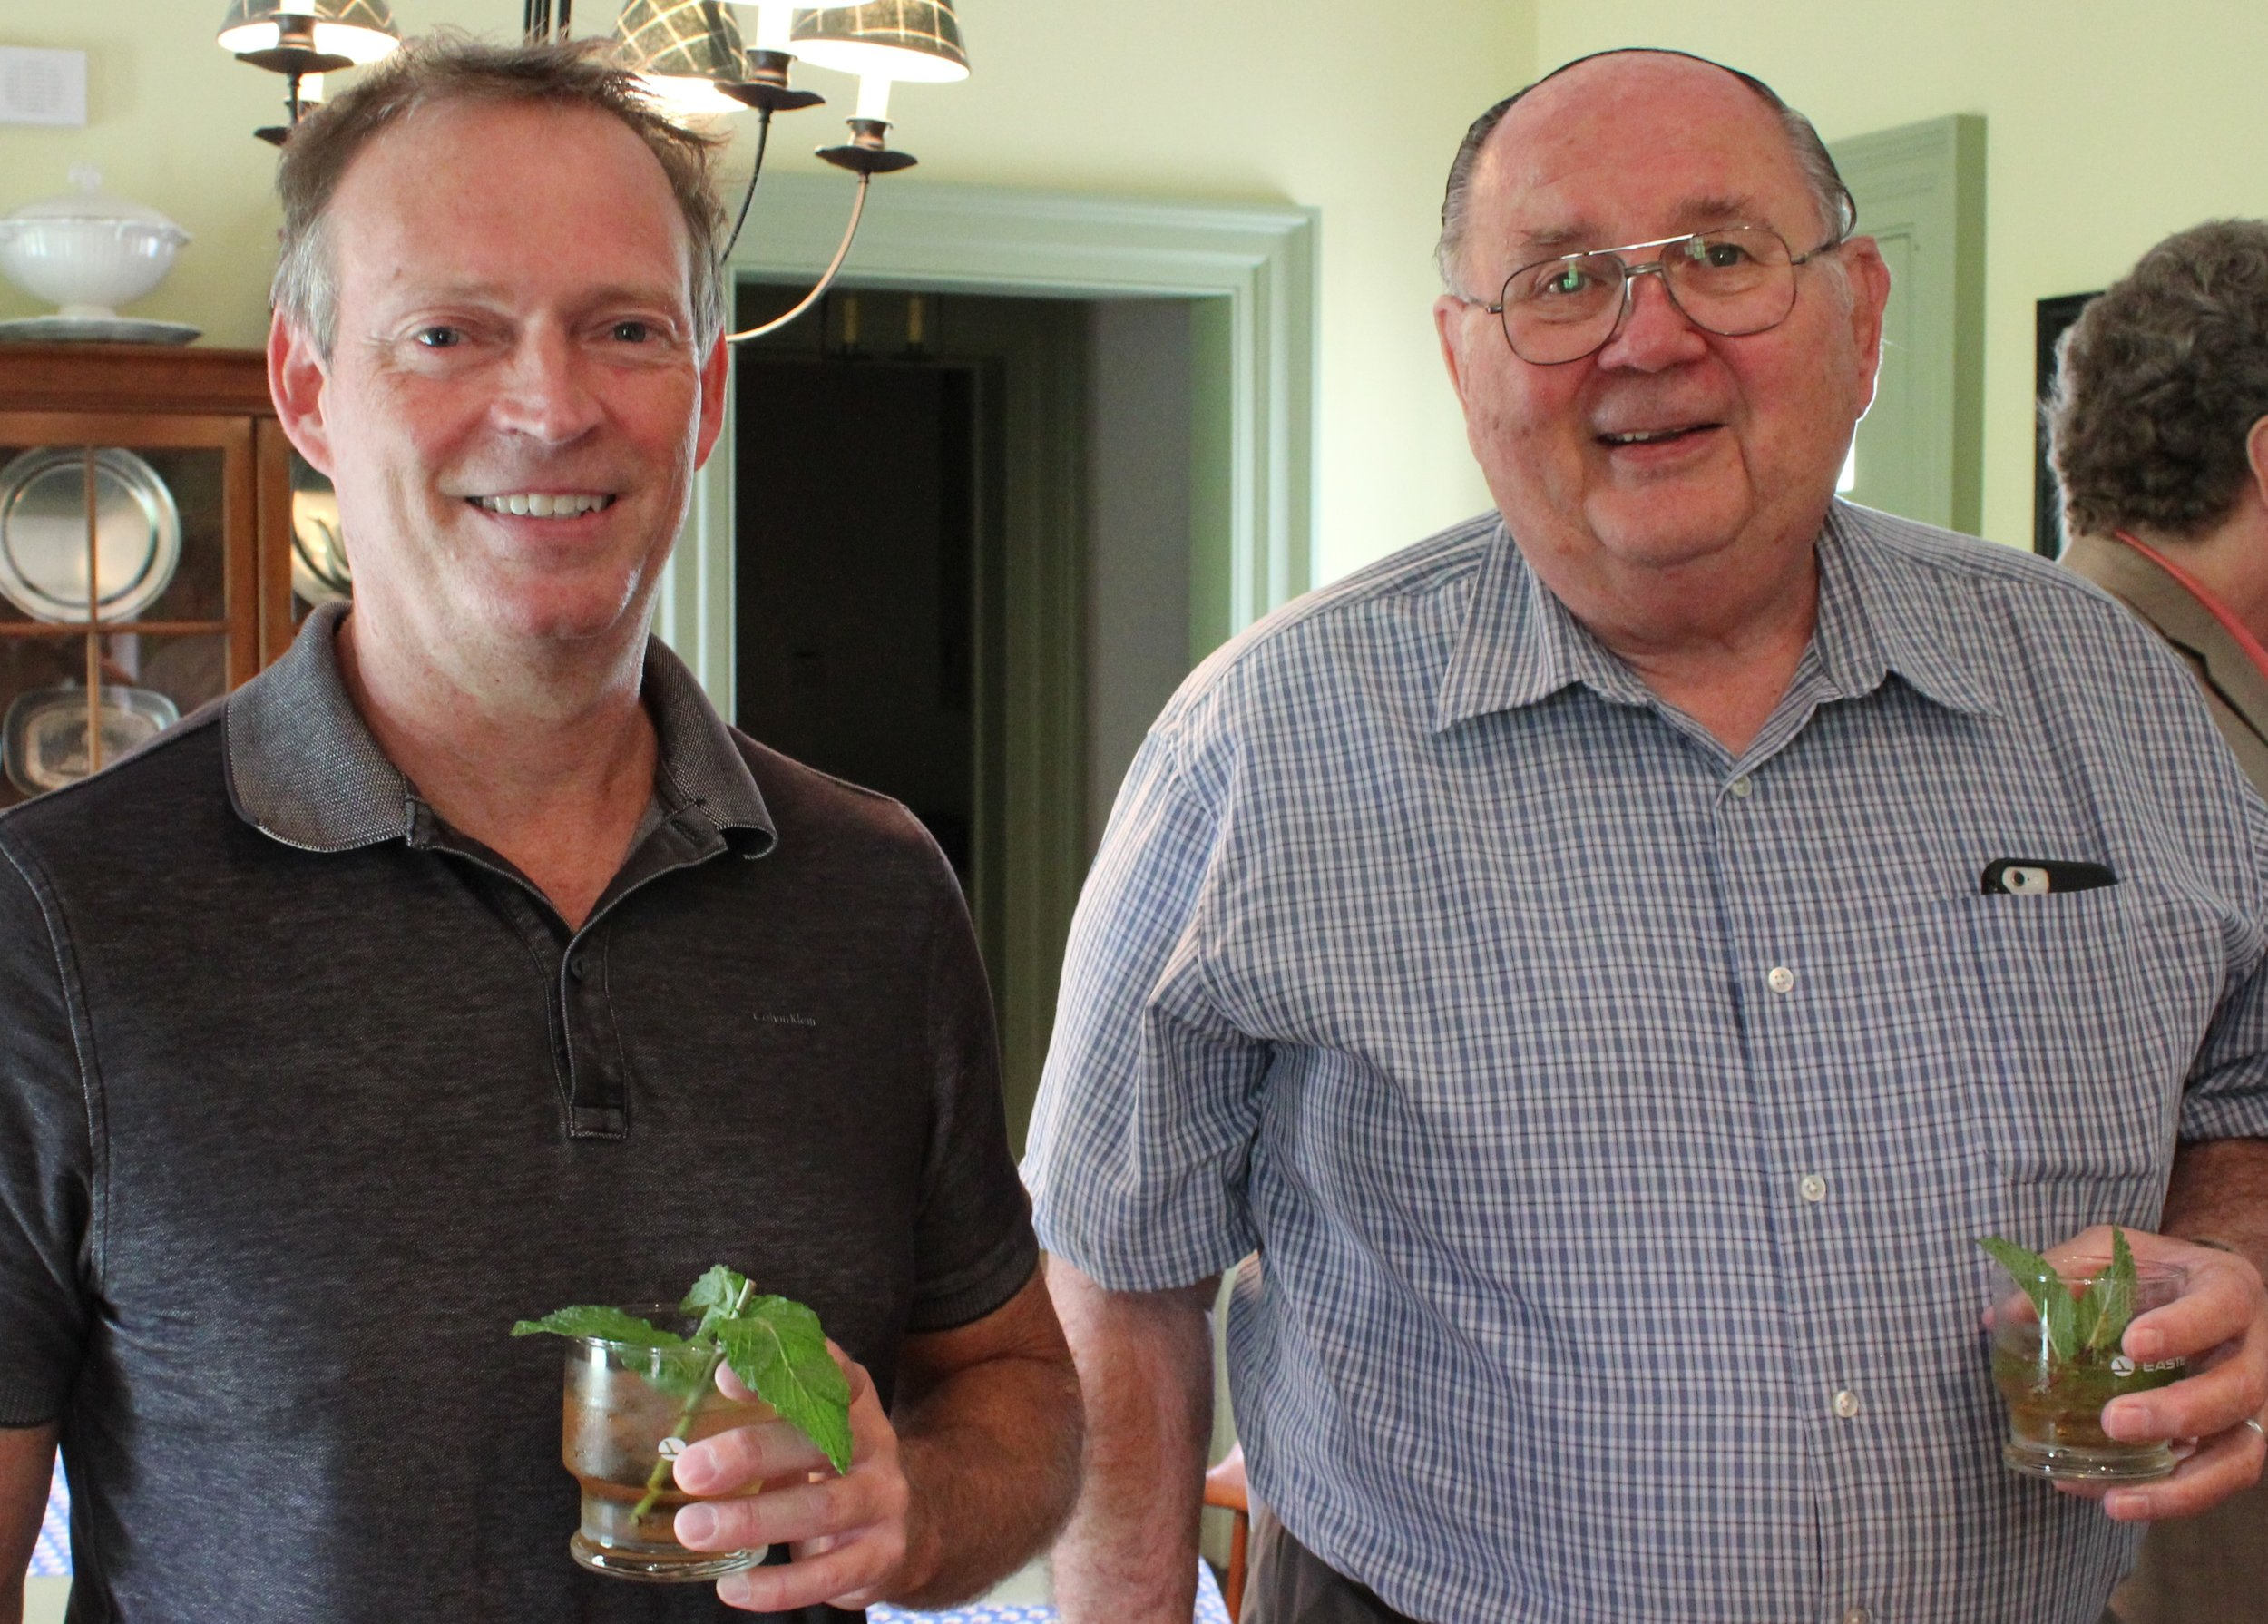 Mint Julep host Todd Saner and Former PCLC Board Member Russ Hoover.